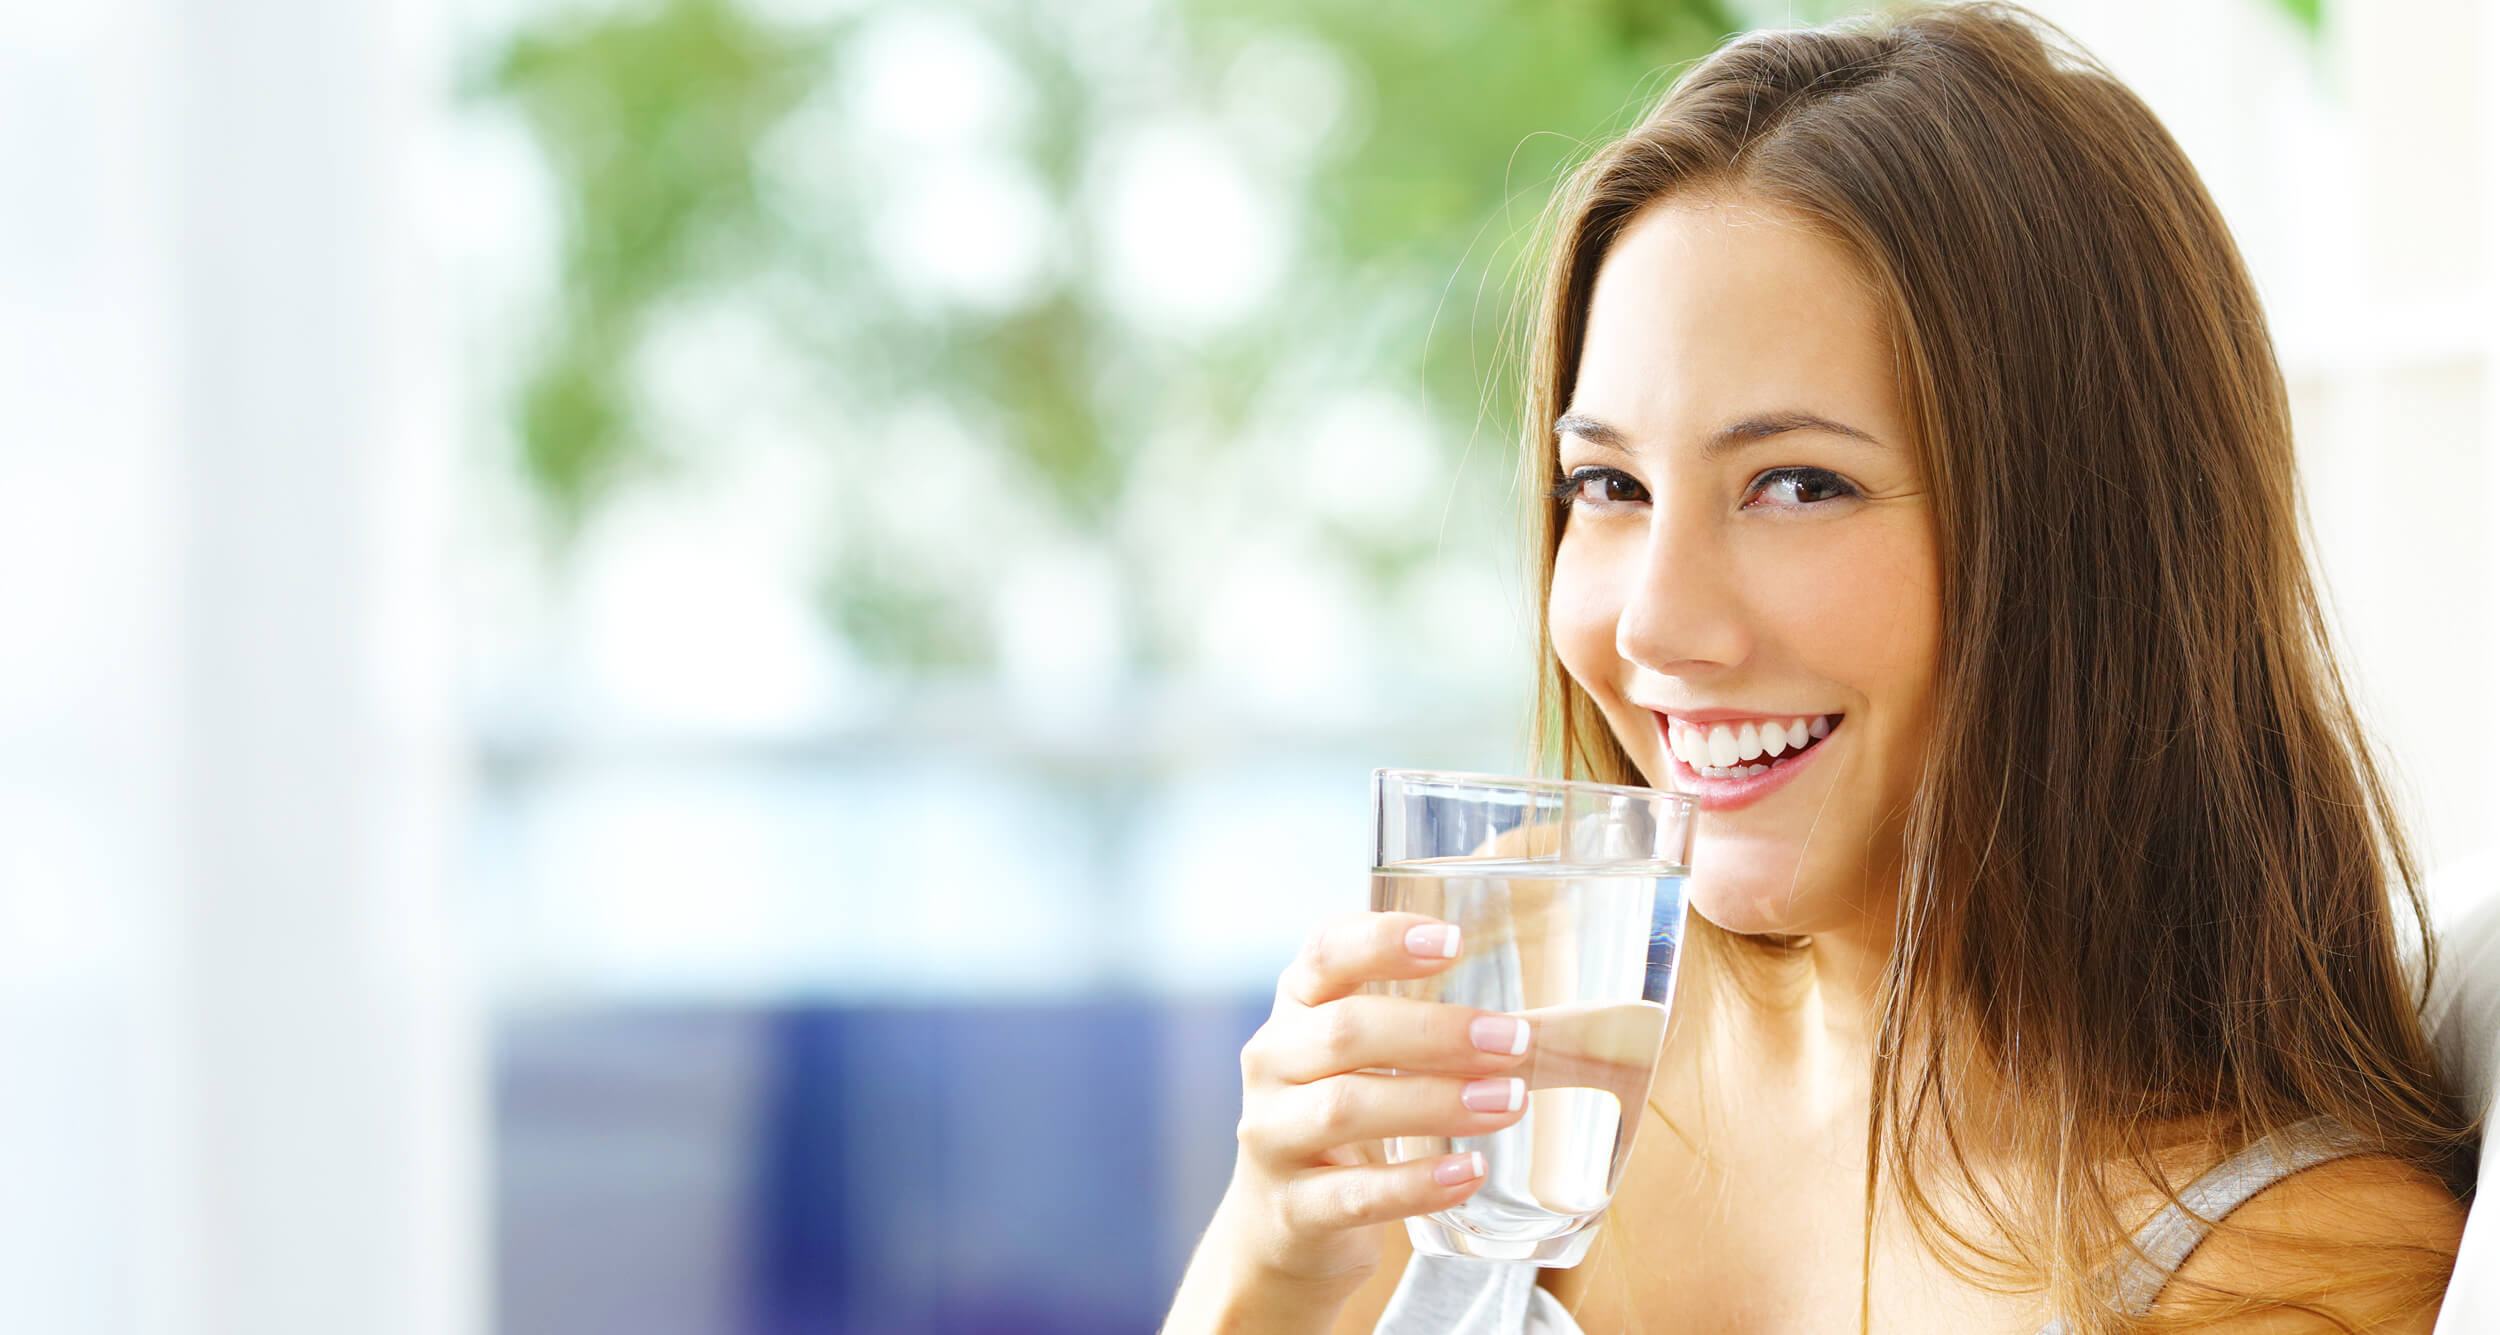 A Girl Showing Her Teeth While Smiling and Holding Glass of Water